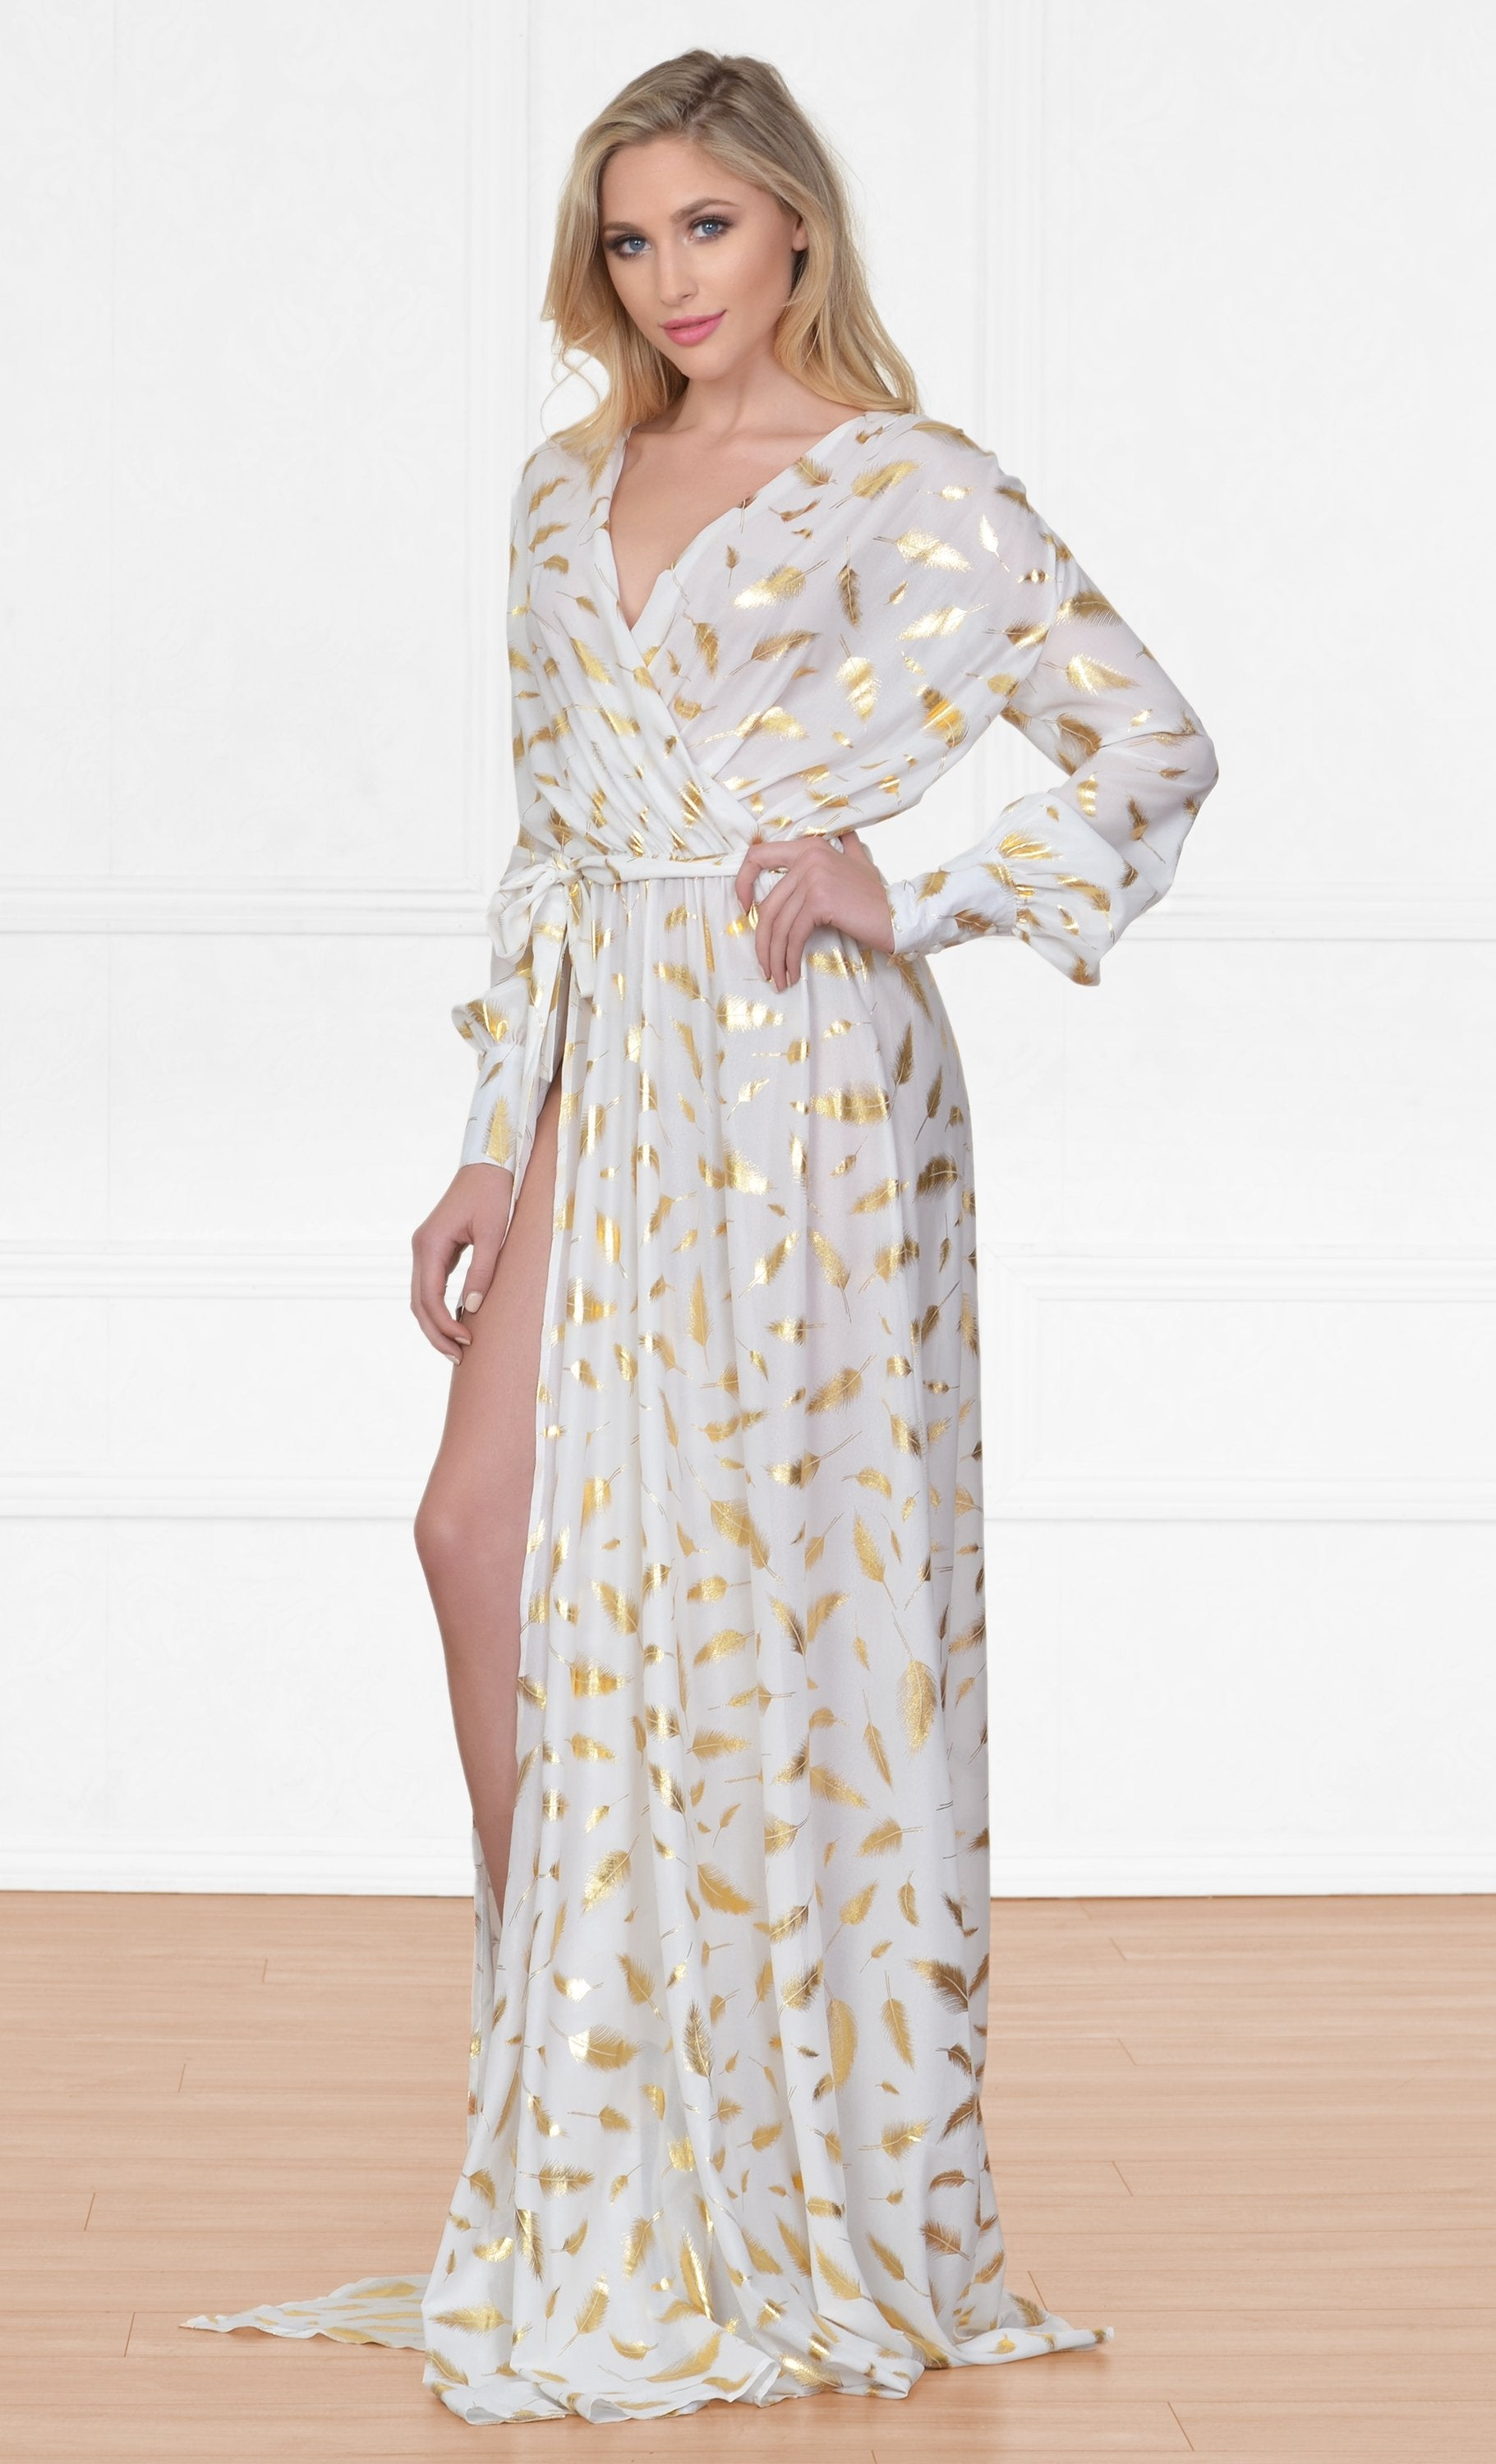 Indie XO Fairytale Fantasy White Gold Feather Long Sleeve Plunge V Neck High Slit Maxi Dress